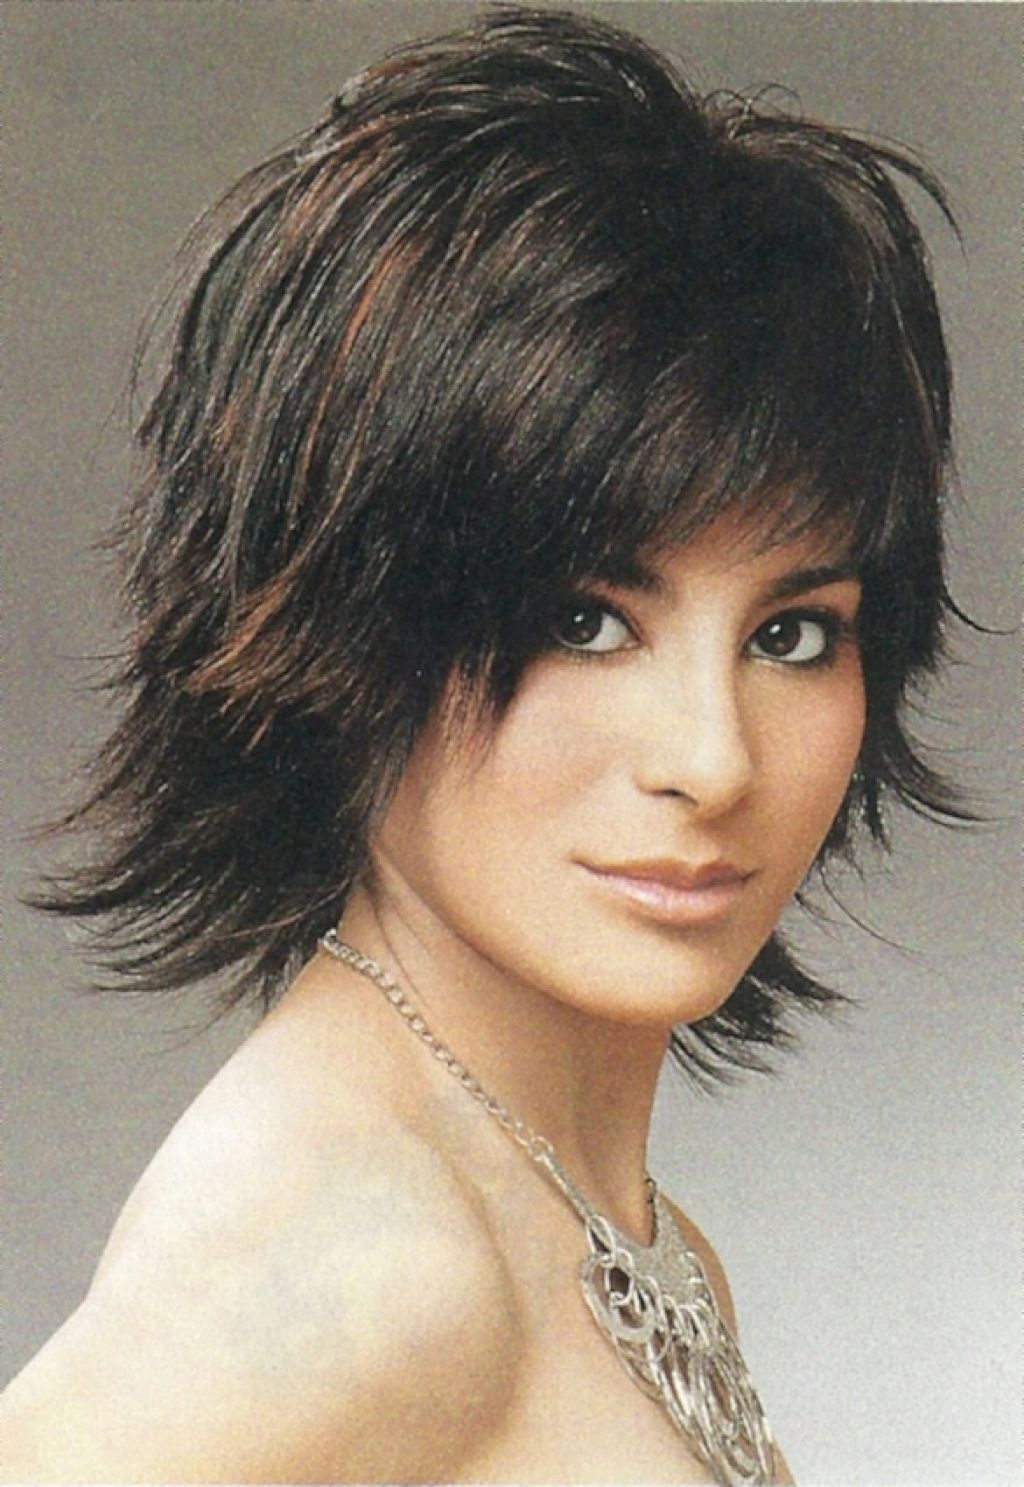 Messy Shaggy Hairstyles For Women (View 9 of 15)